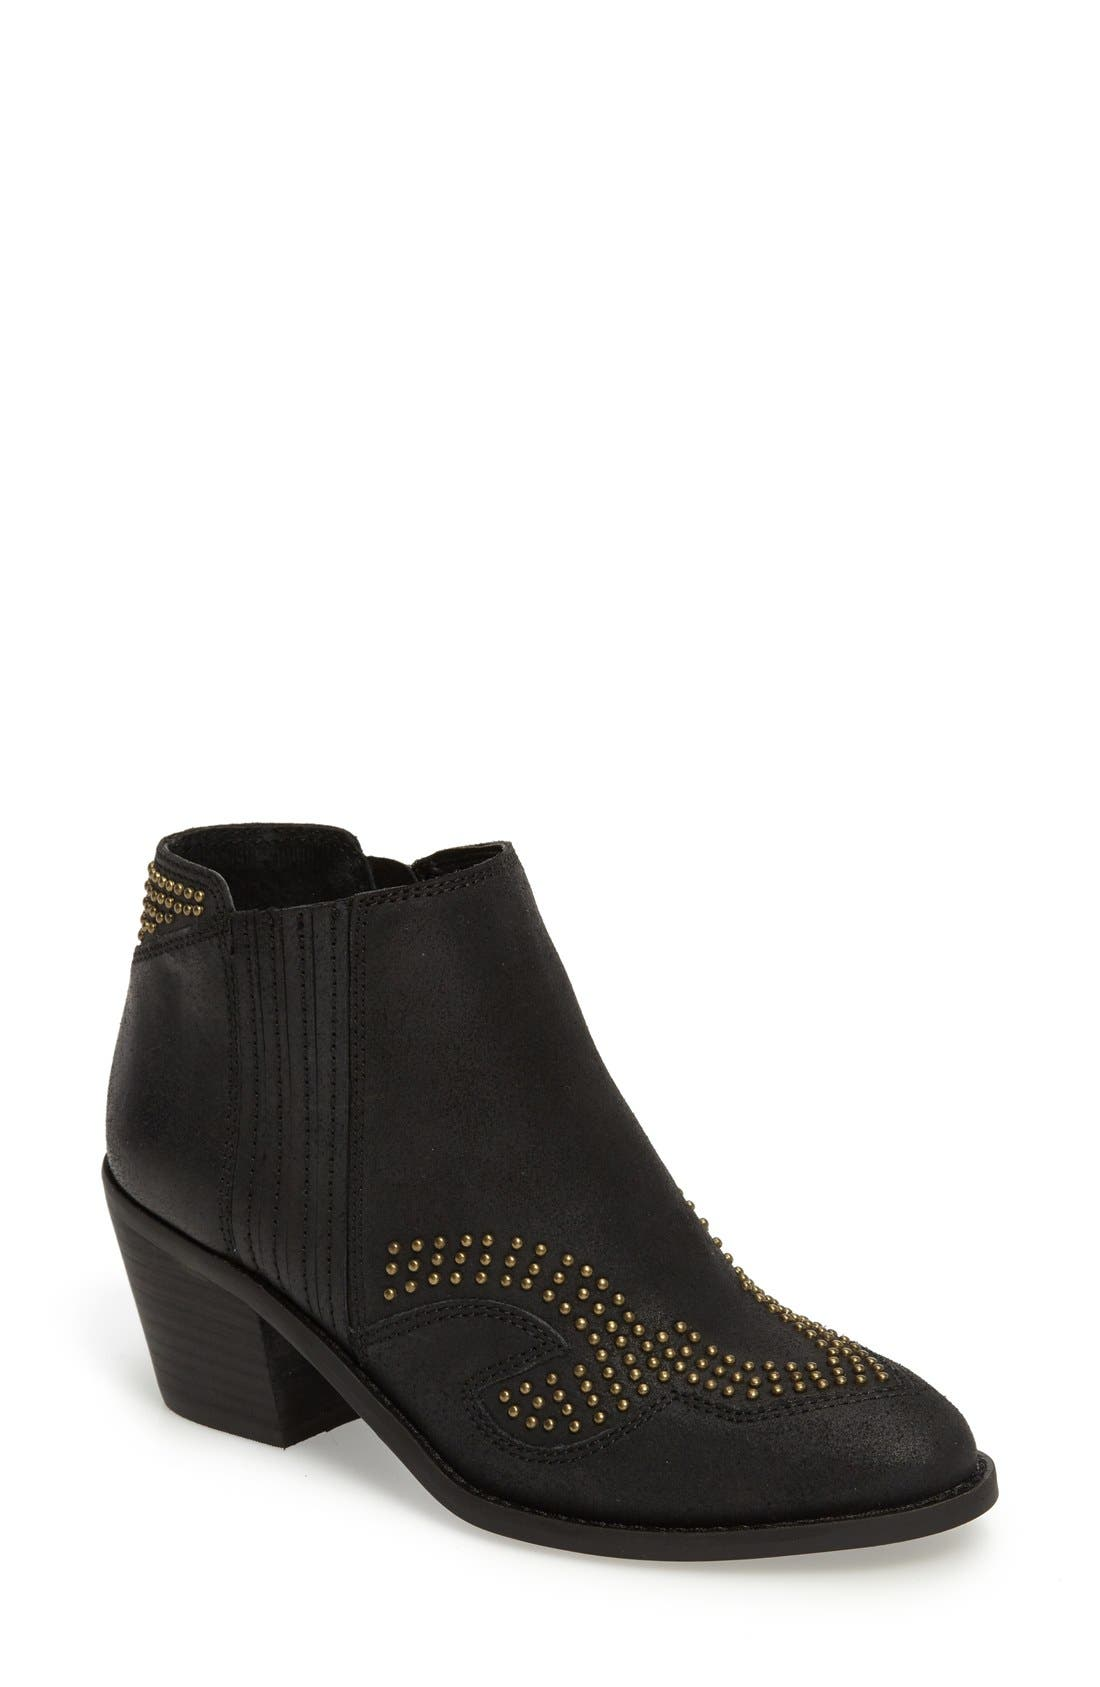 Alternate Image 1 Selected - Lucky Brand Maiaa Studded Bootie (Women)